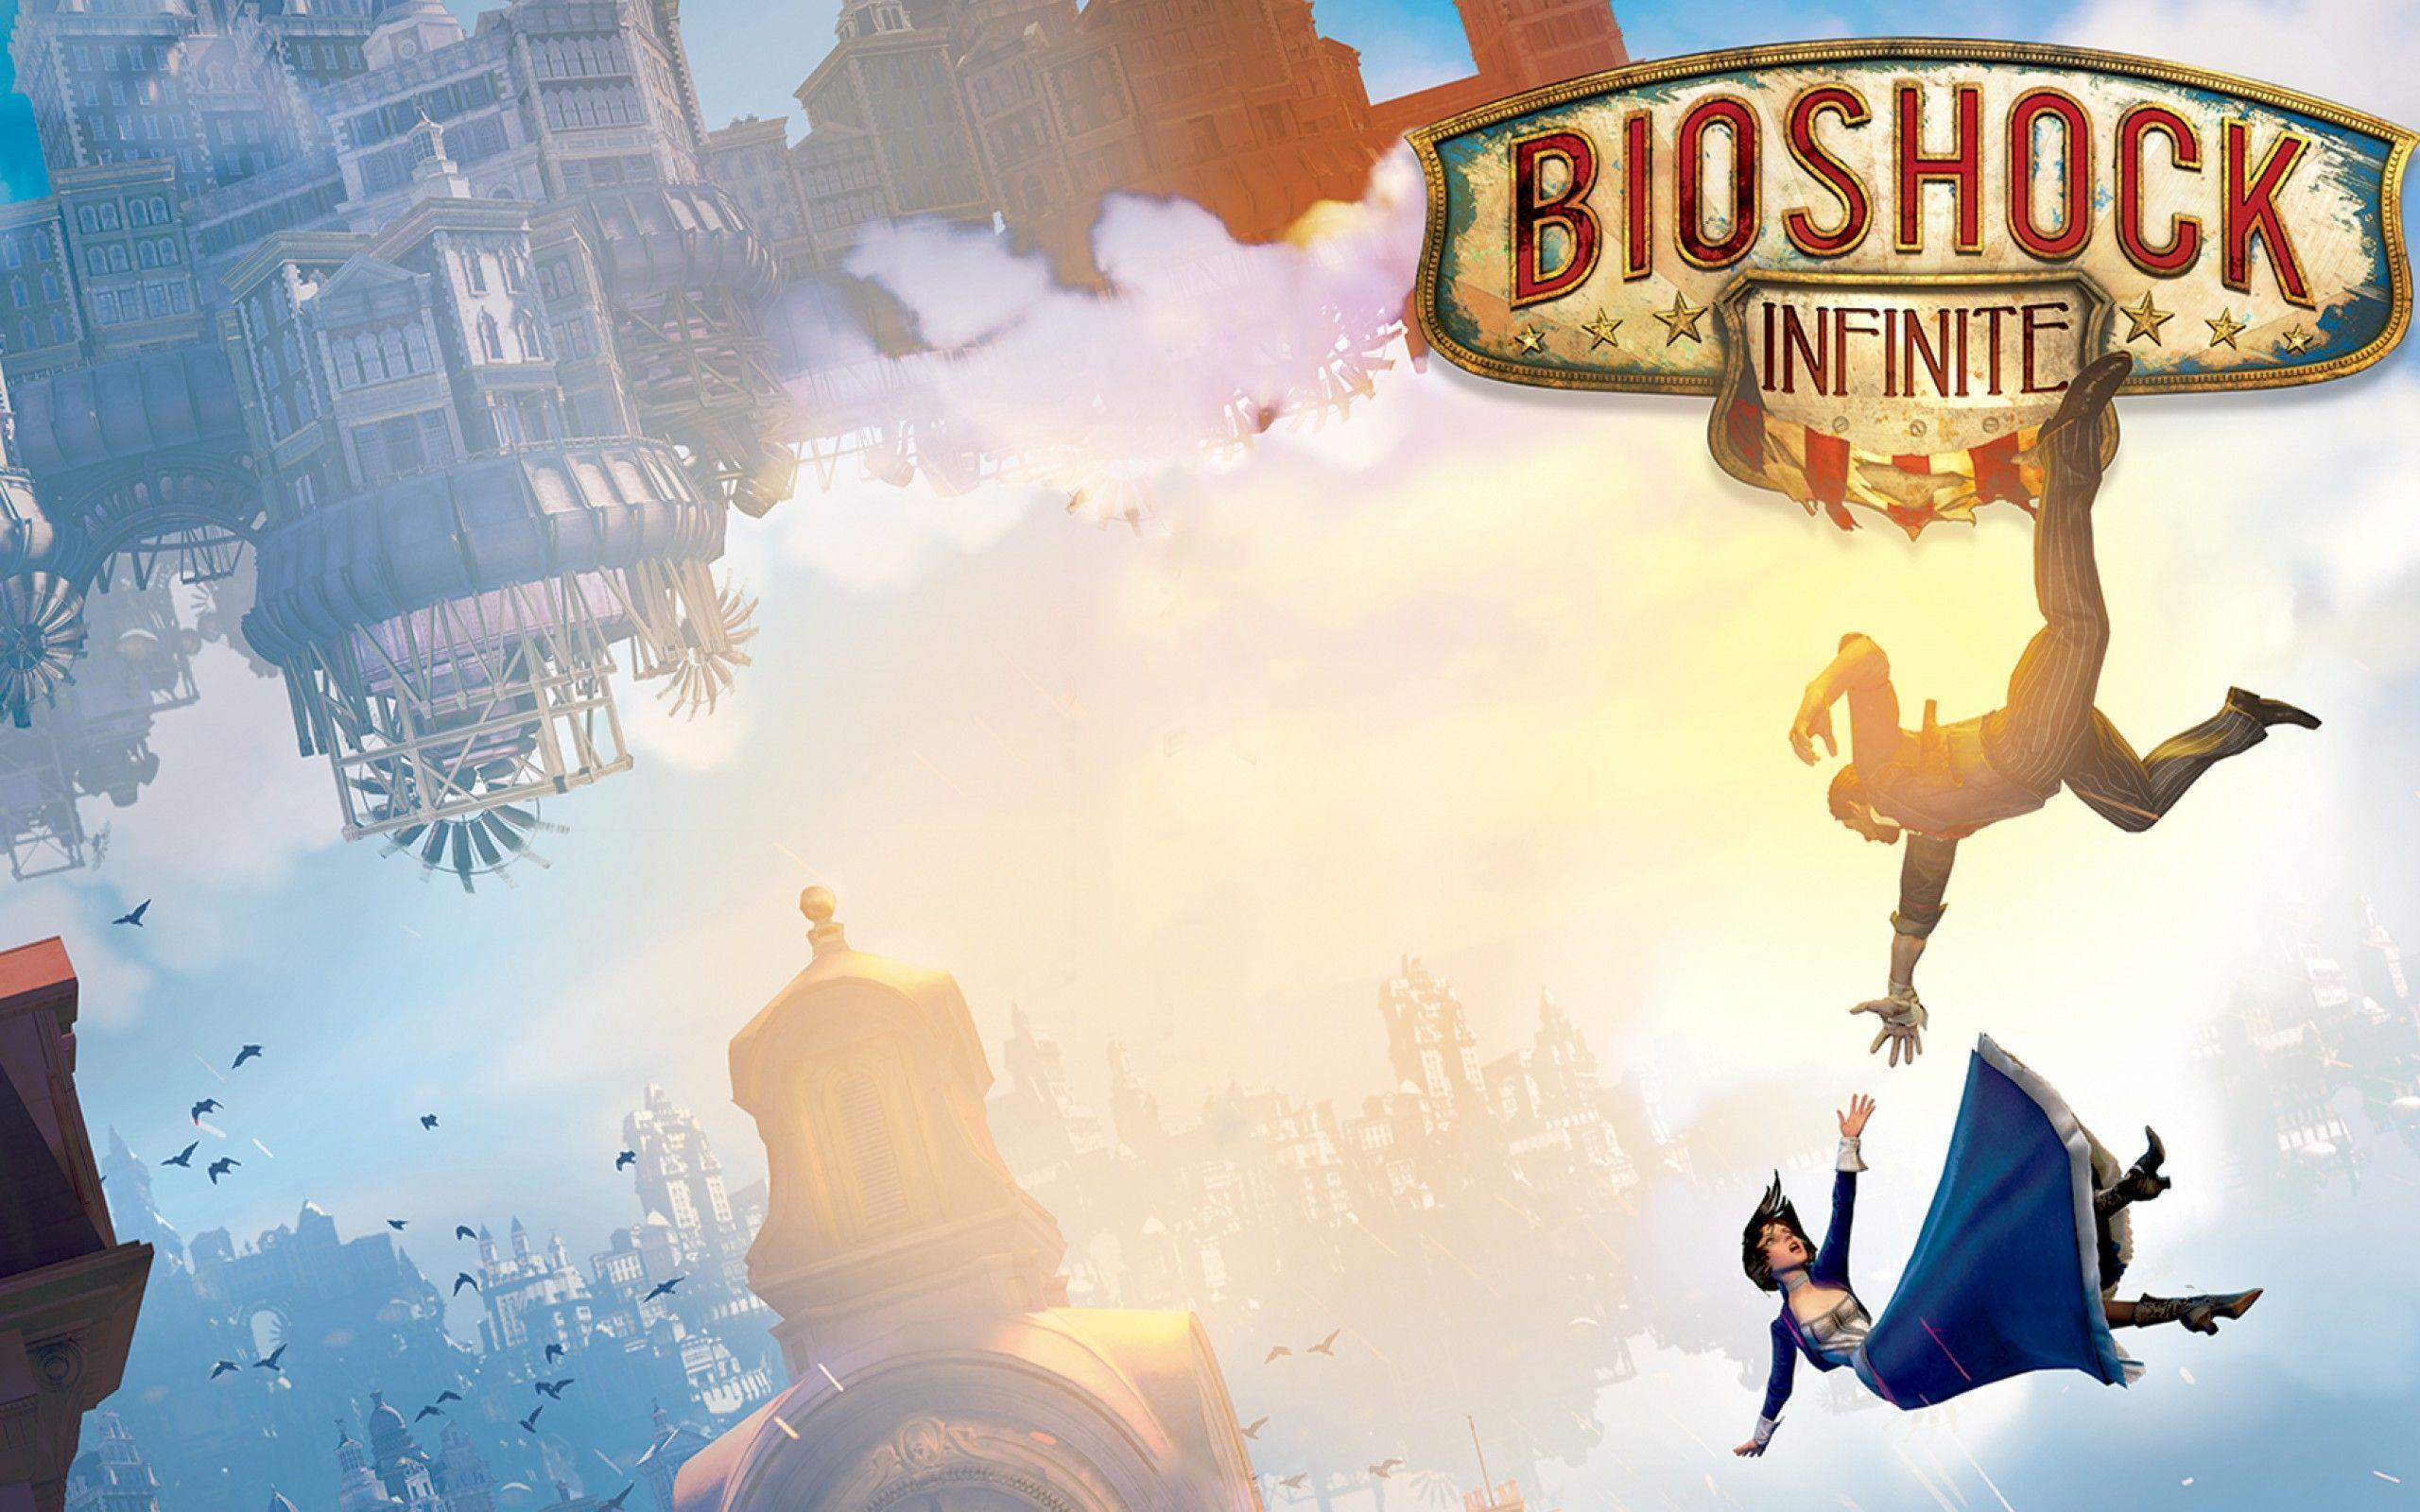 Bioshock Infinite Wallpapers Hd The Tps Games 510x330PX ~ Wallpapers